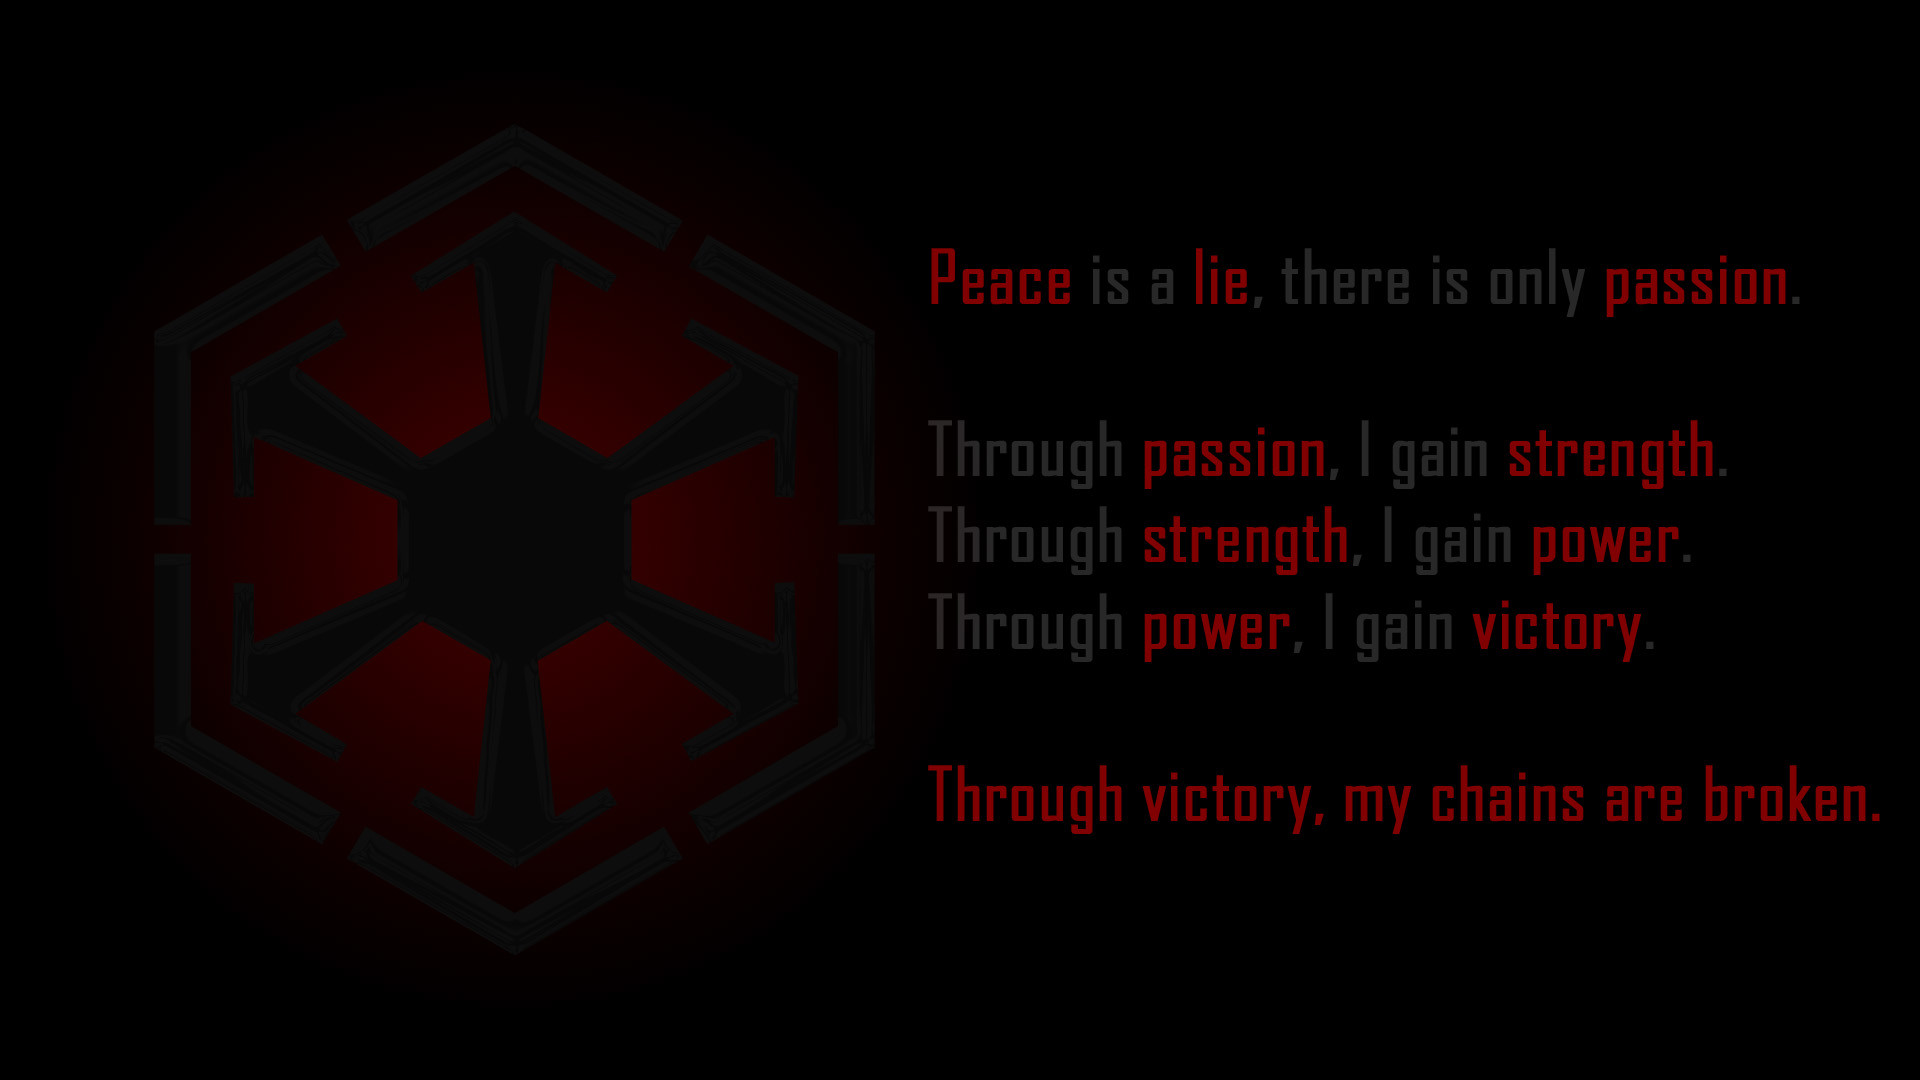 Star Wars Wallpapers with Sith Code | The Art Mad Wallpapers